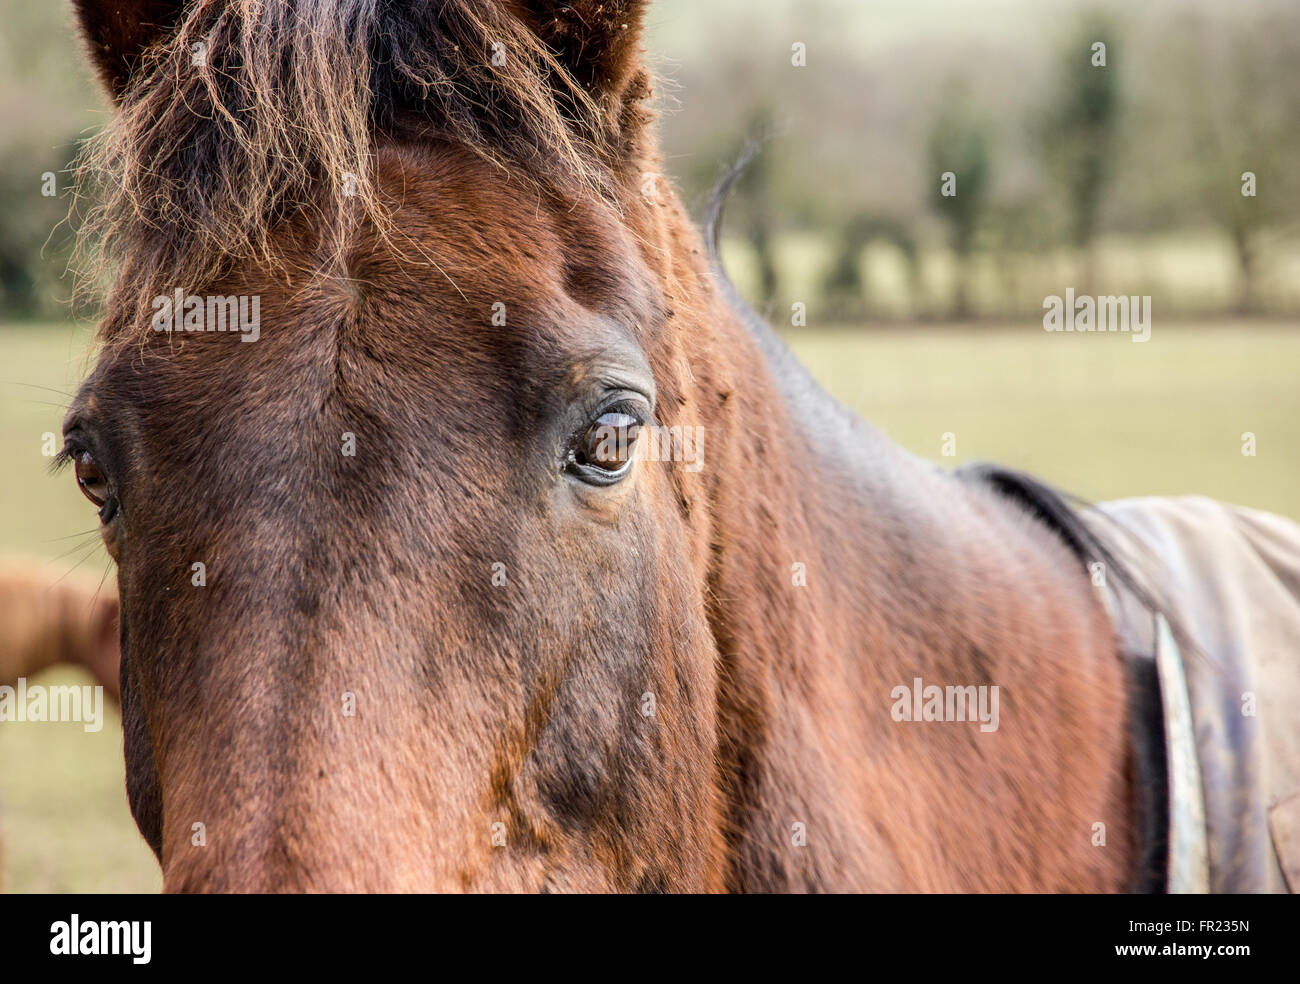 Through the eyes of a Horse - Stock Image